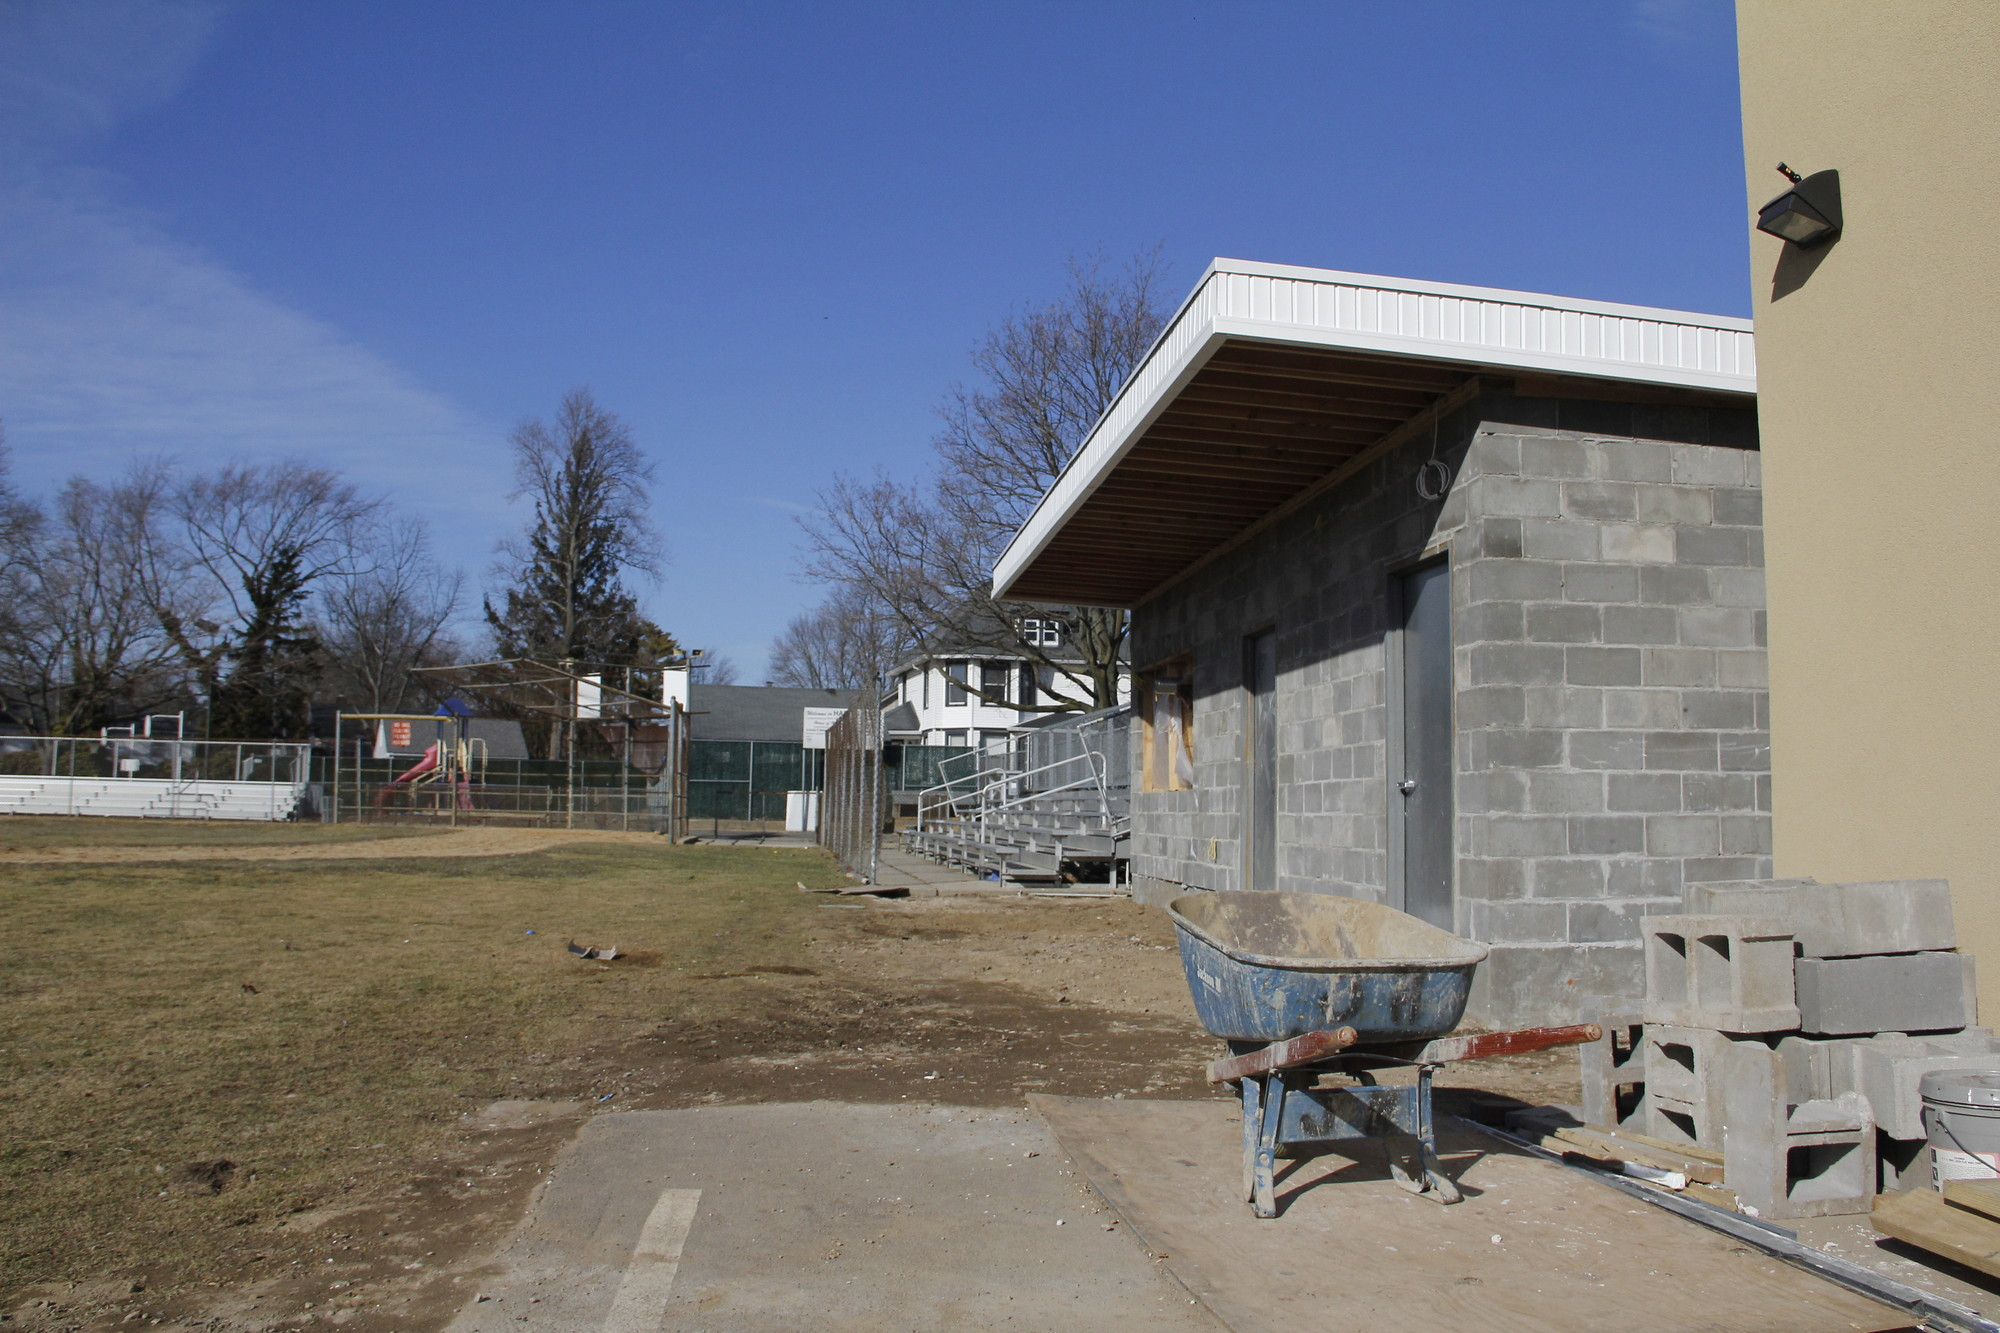 The Malverne Little League will unveil its new concession stand, complete with handicap accessible bathrooms, at this year's Opening Day ceremony on April 19 at Harris Field.